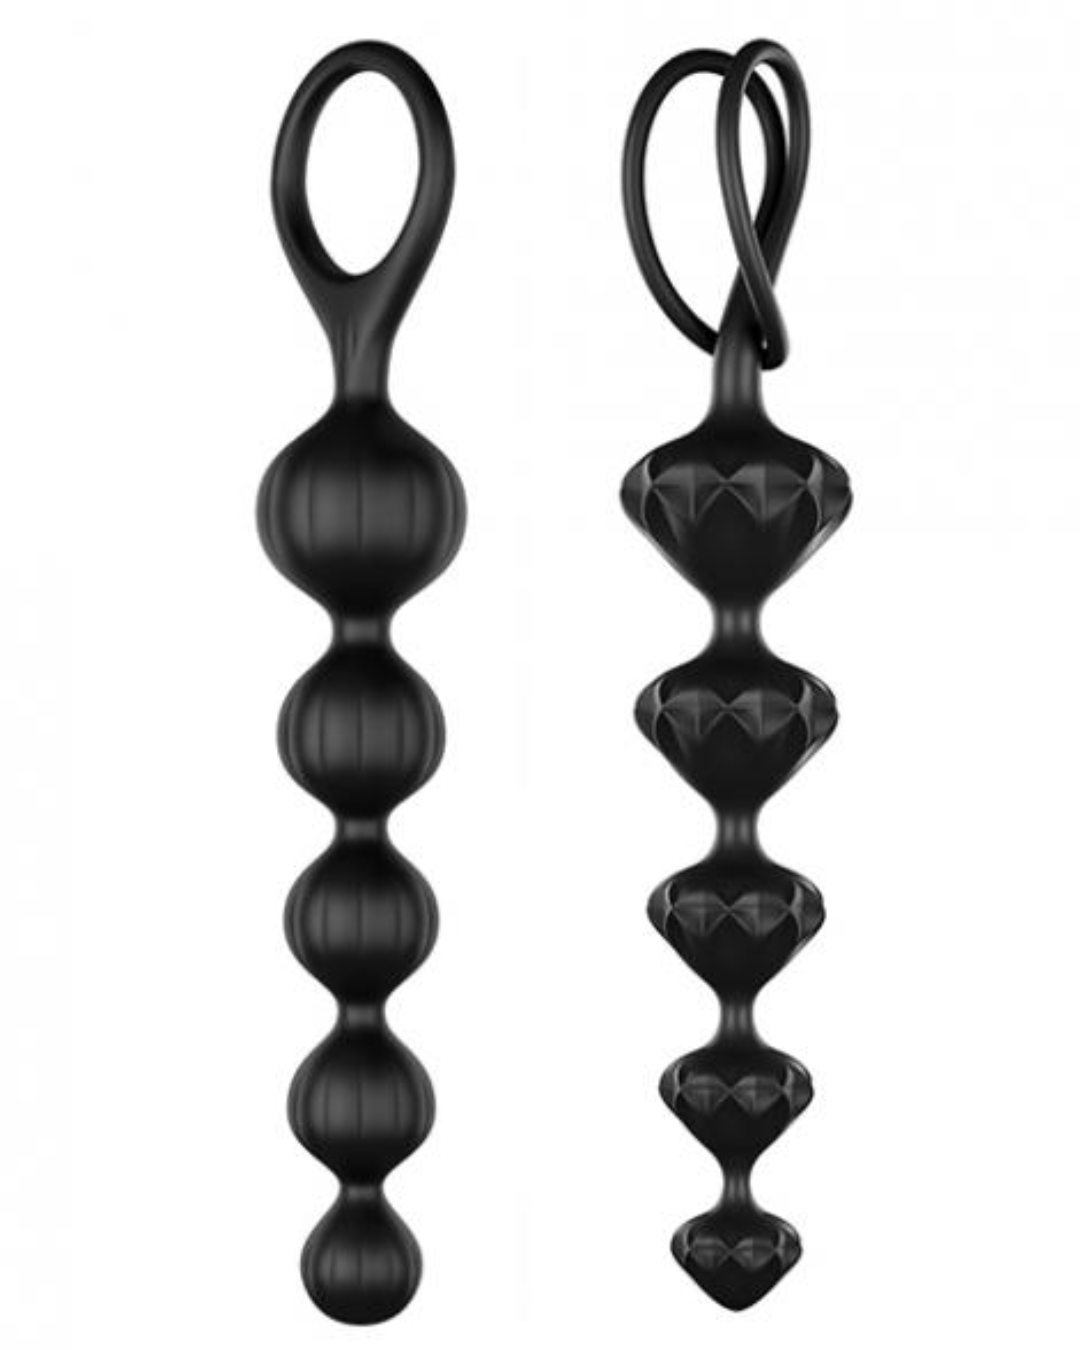 Satisfyer Silicone Anal Beads Set of 2 - Black